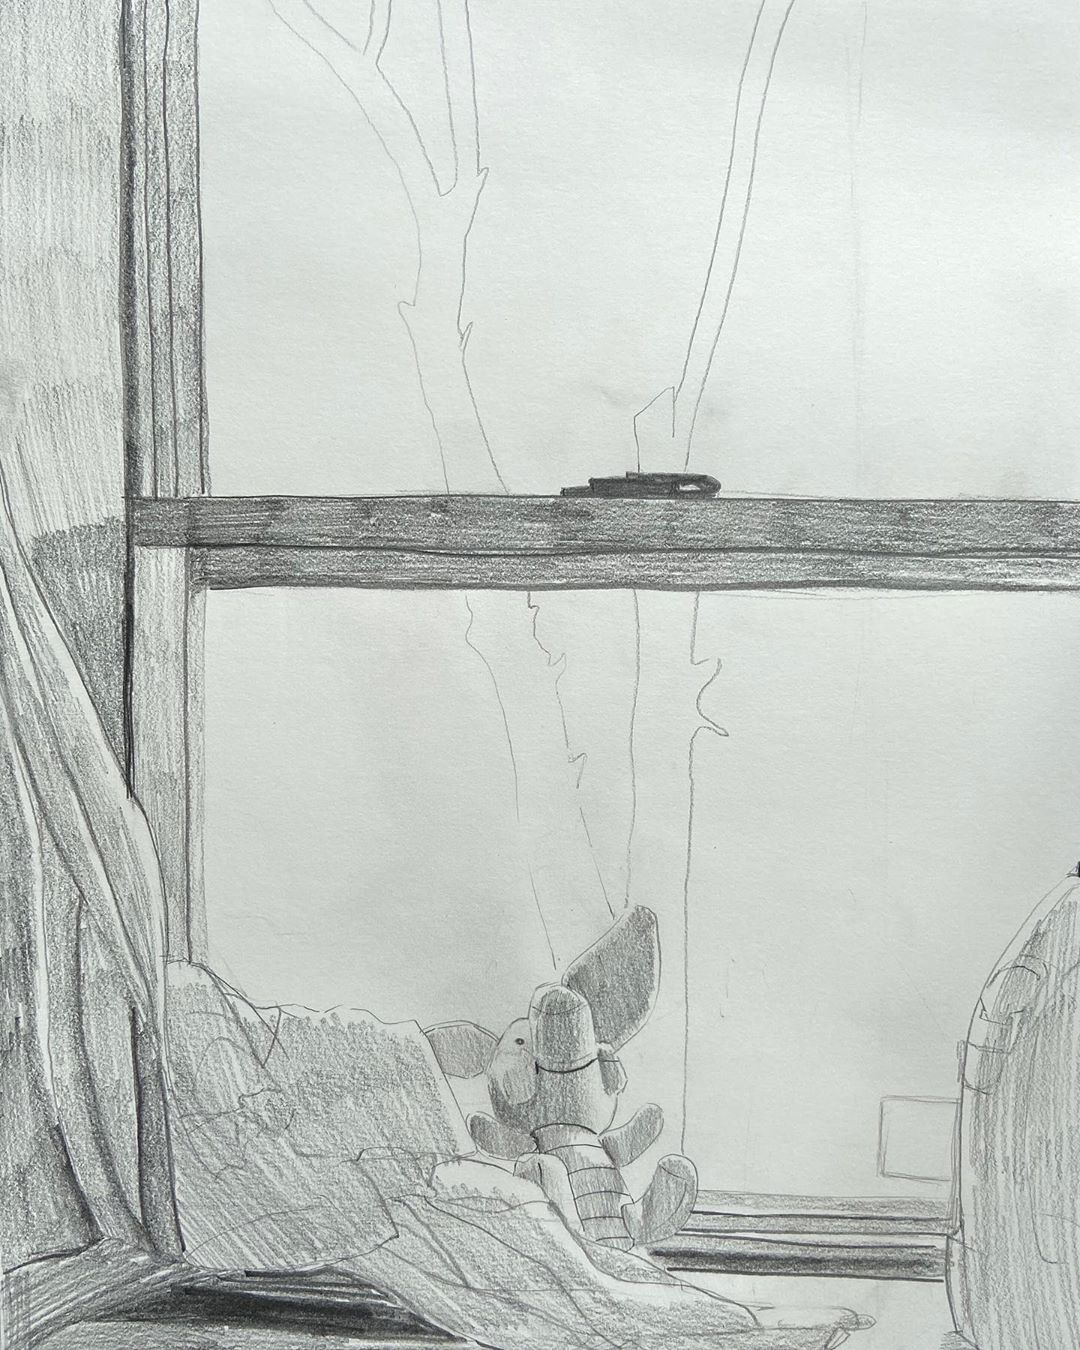 Drawing by Yasmmine Yoon created as part of Pratt Young Scholars (via @PrattInstitute/Instagram)